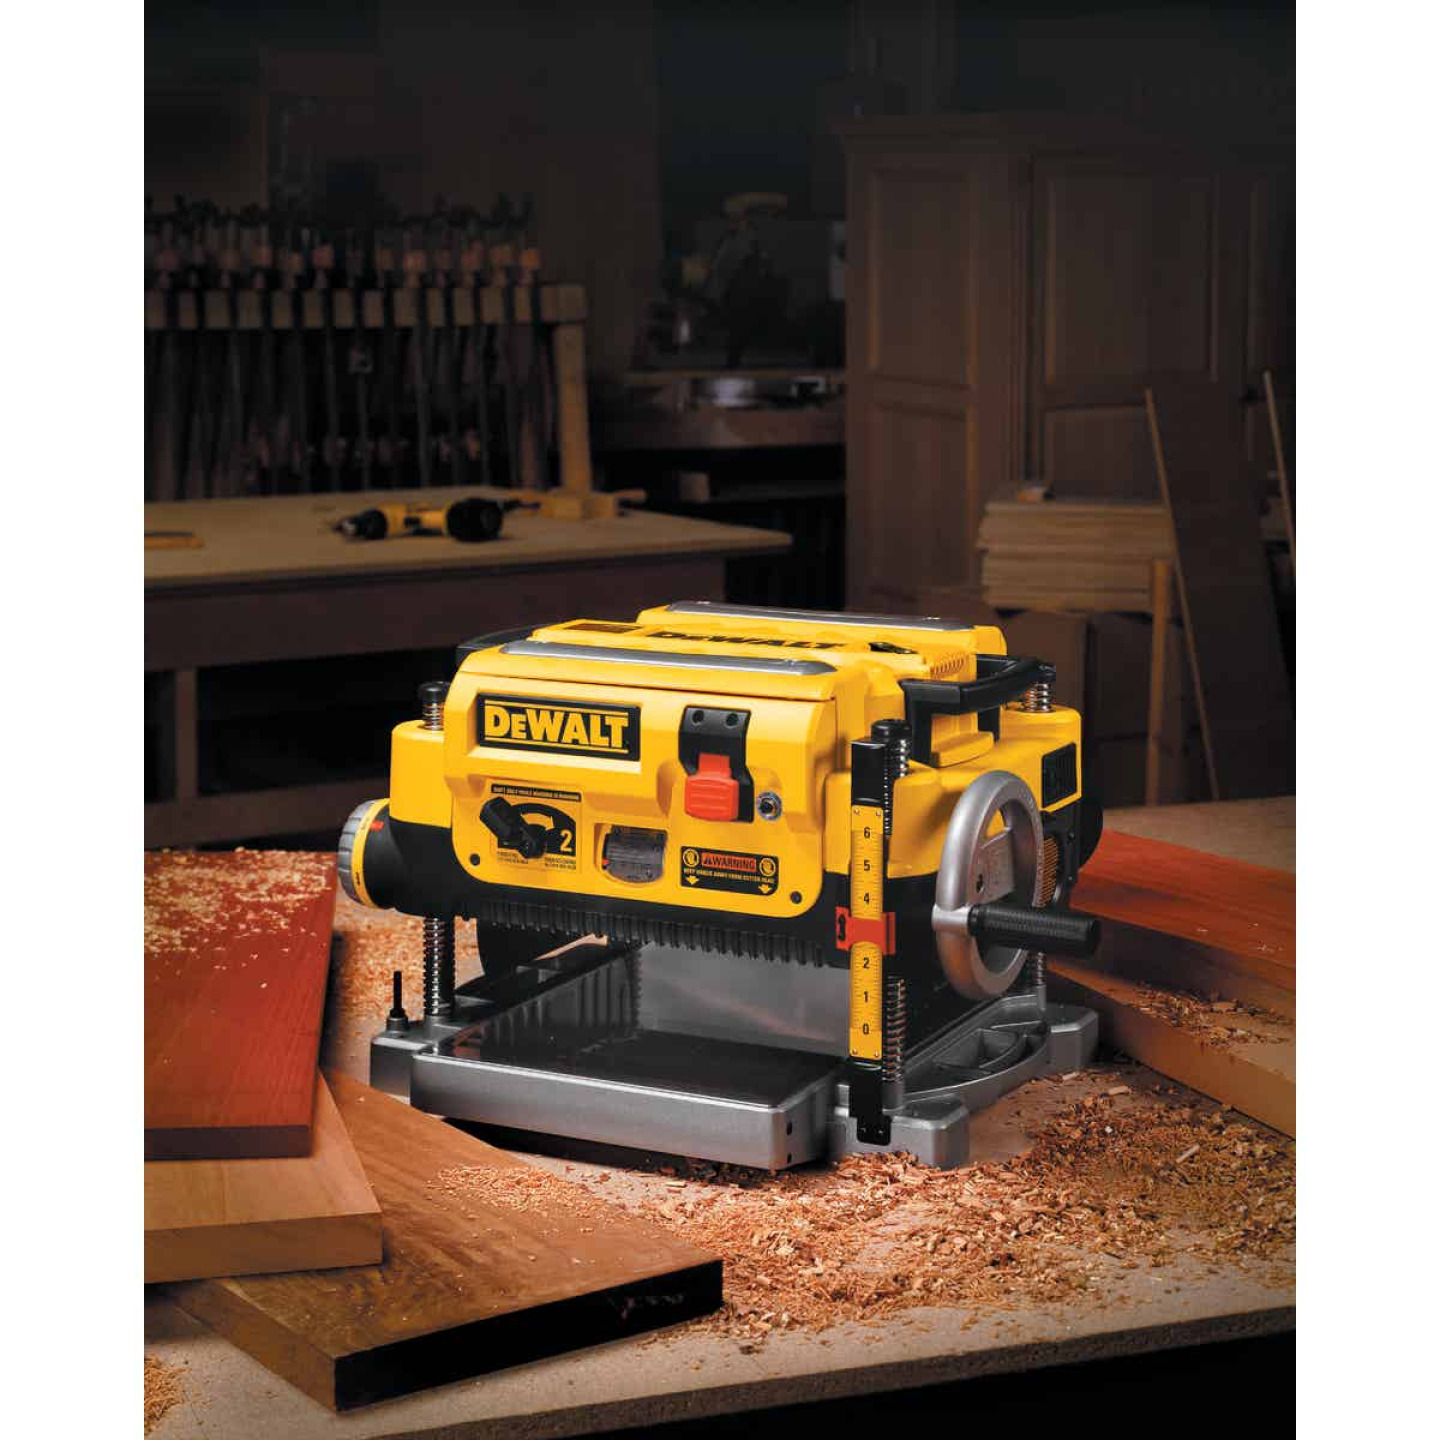 DeWalt 13 In. Three Knife Two-Speed Portable Planer Image 5